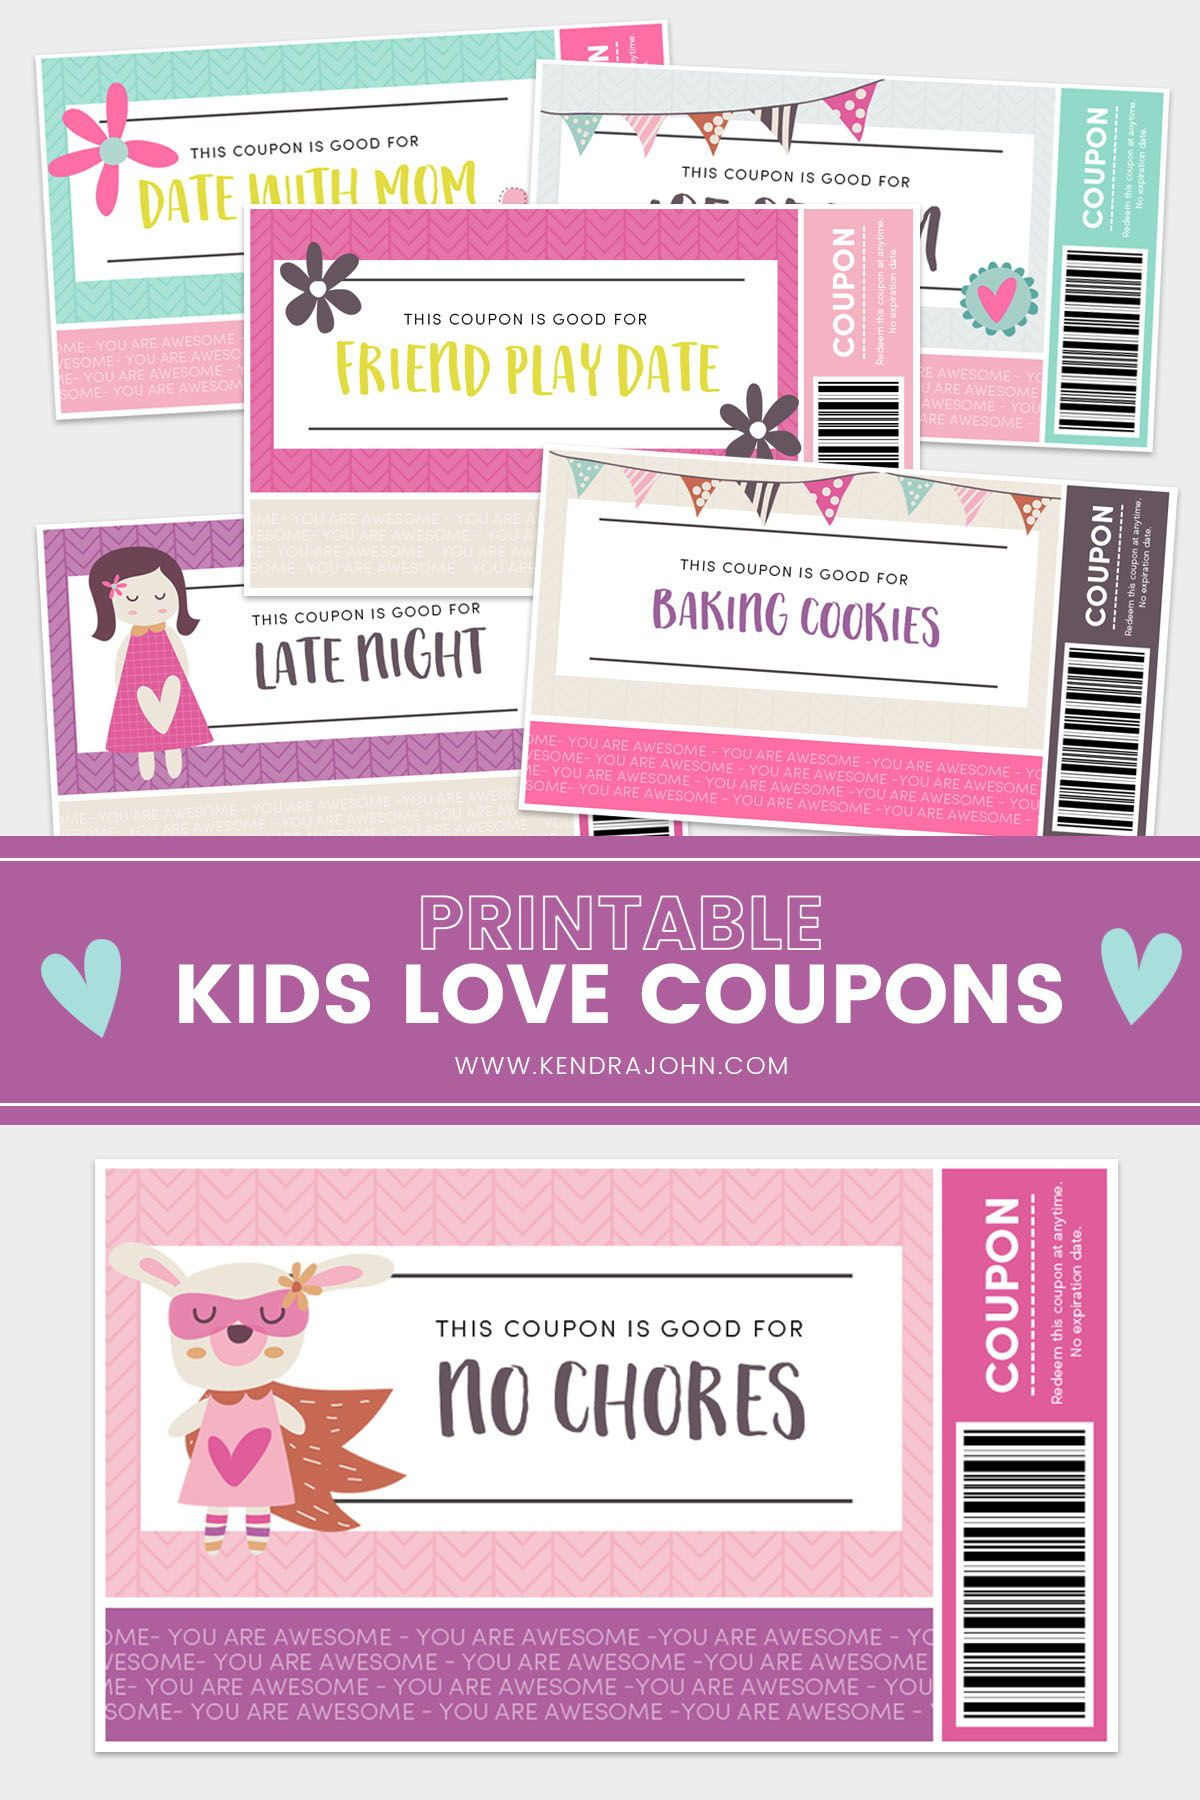 Make A Coupon Love Book For Your Kids With These Printable